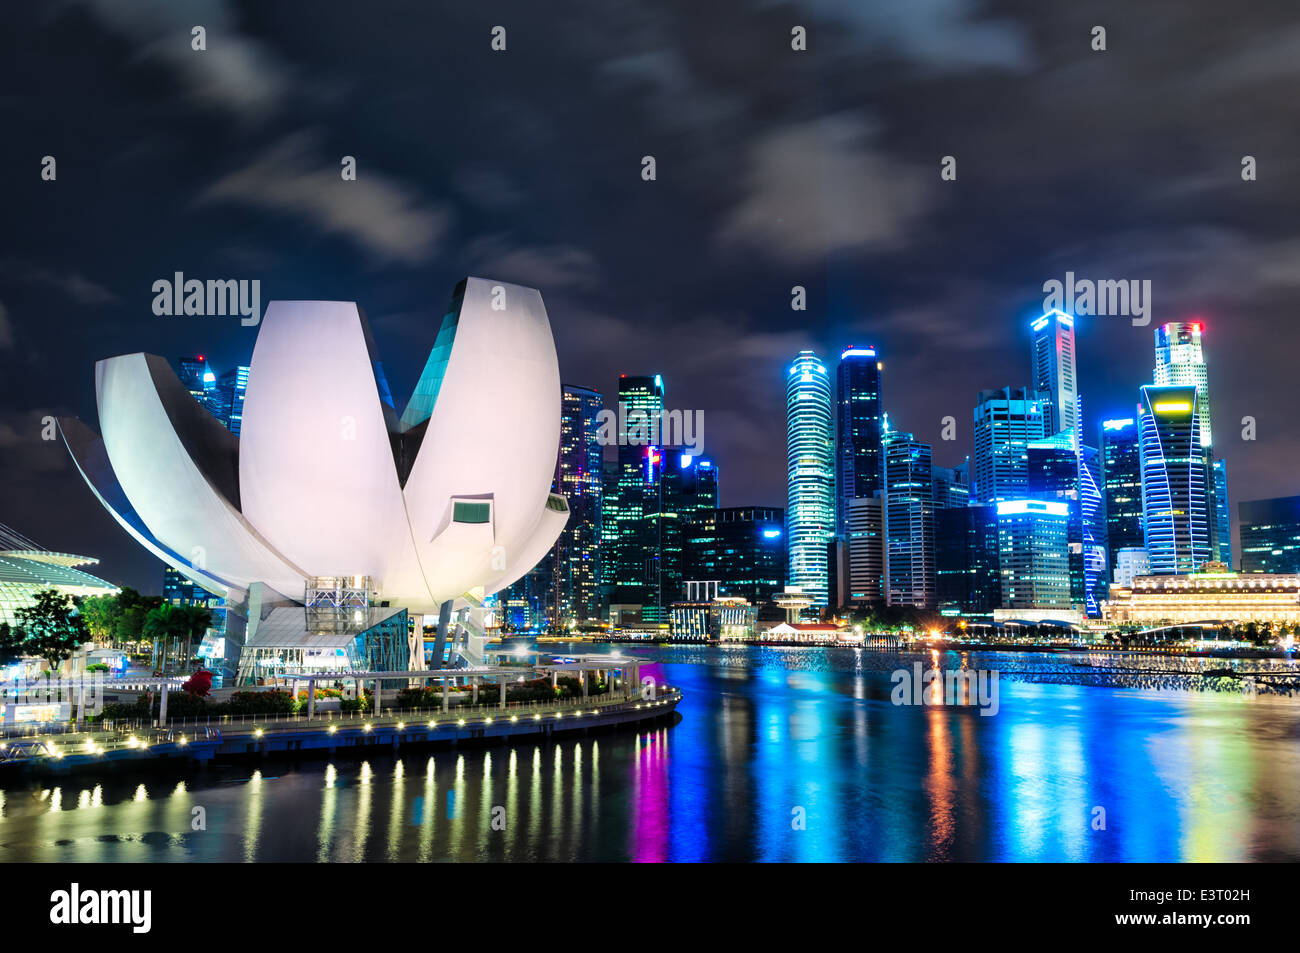 Die Skyline von Singapur in der Nacht mit dem ArtScience Museum im Vordergrund. Stockbild